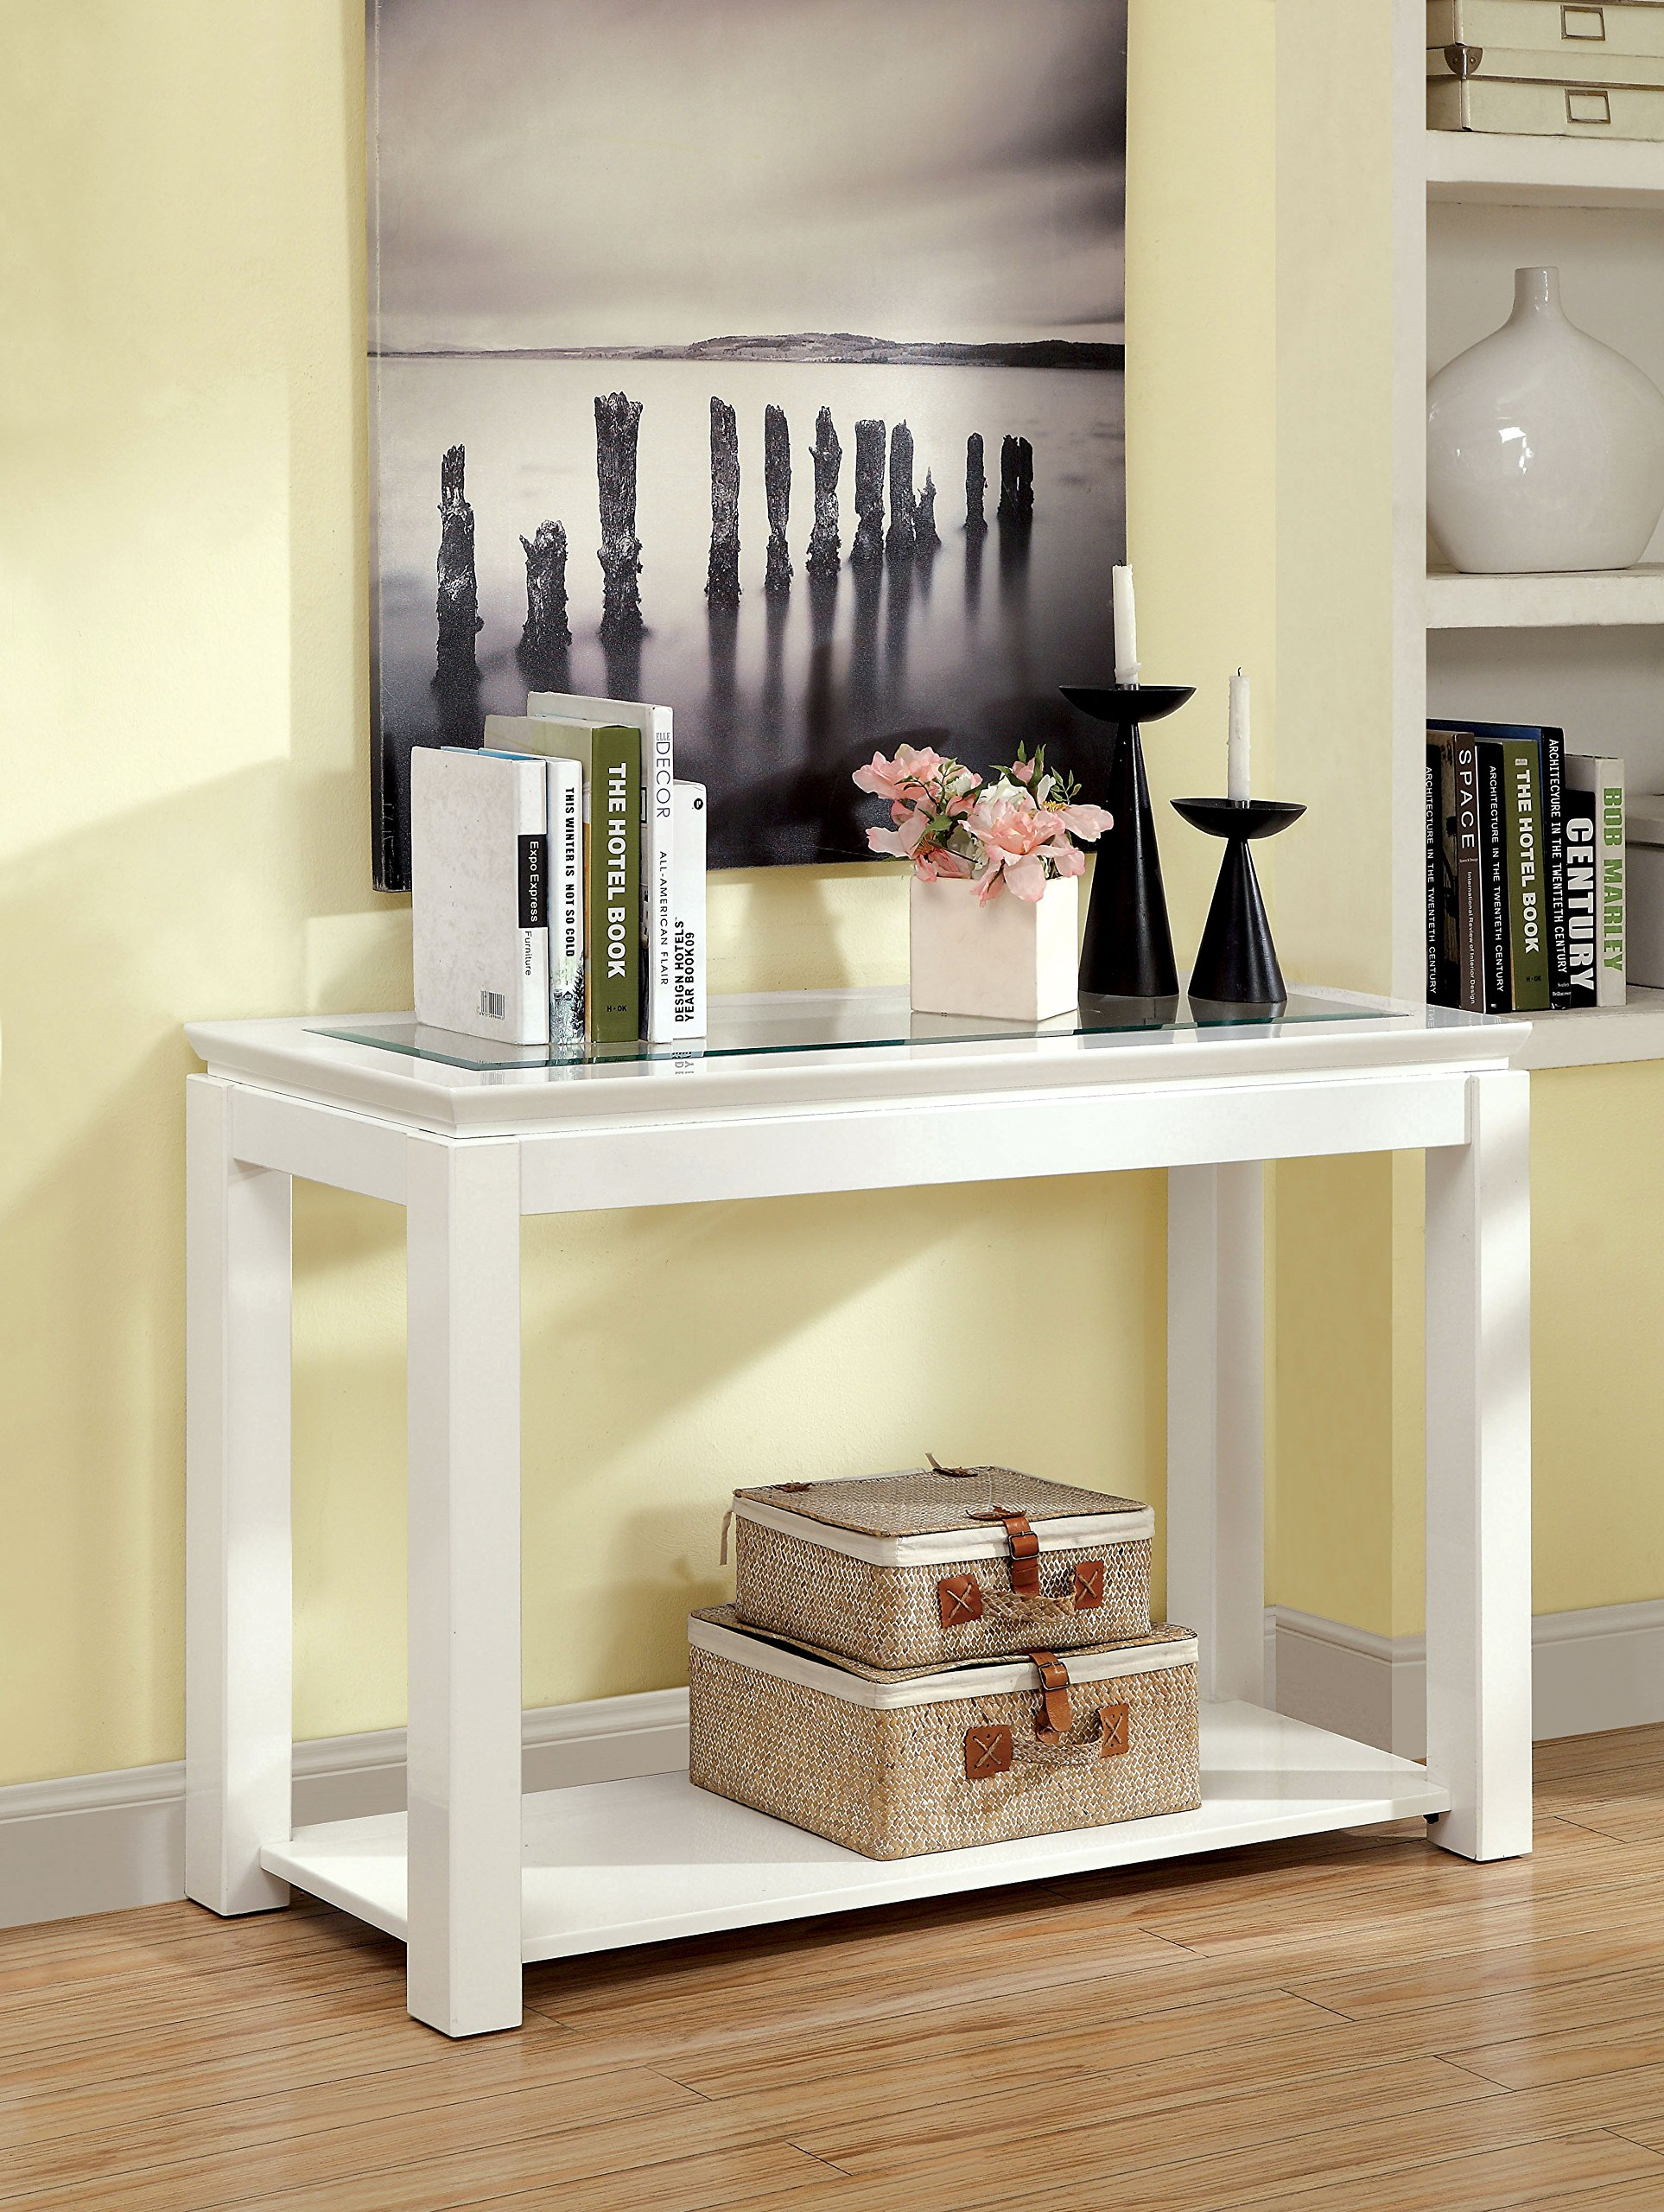 Furniture of America Kappa Contemporary Glass Top Sofa Table, White